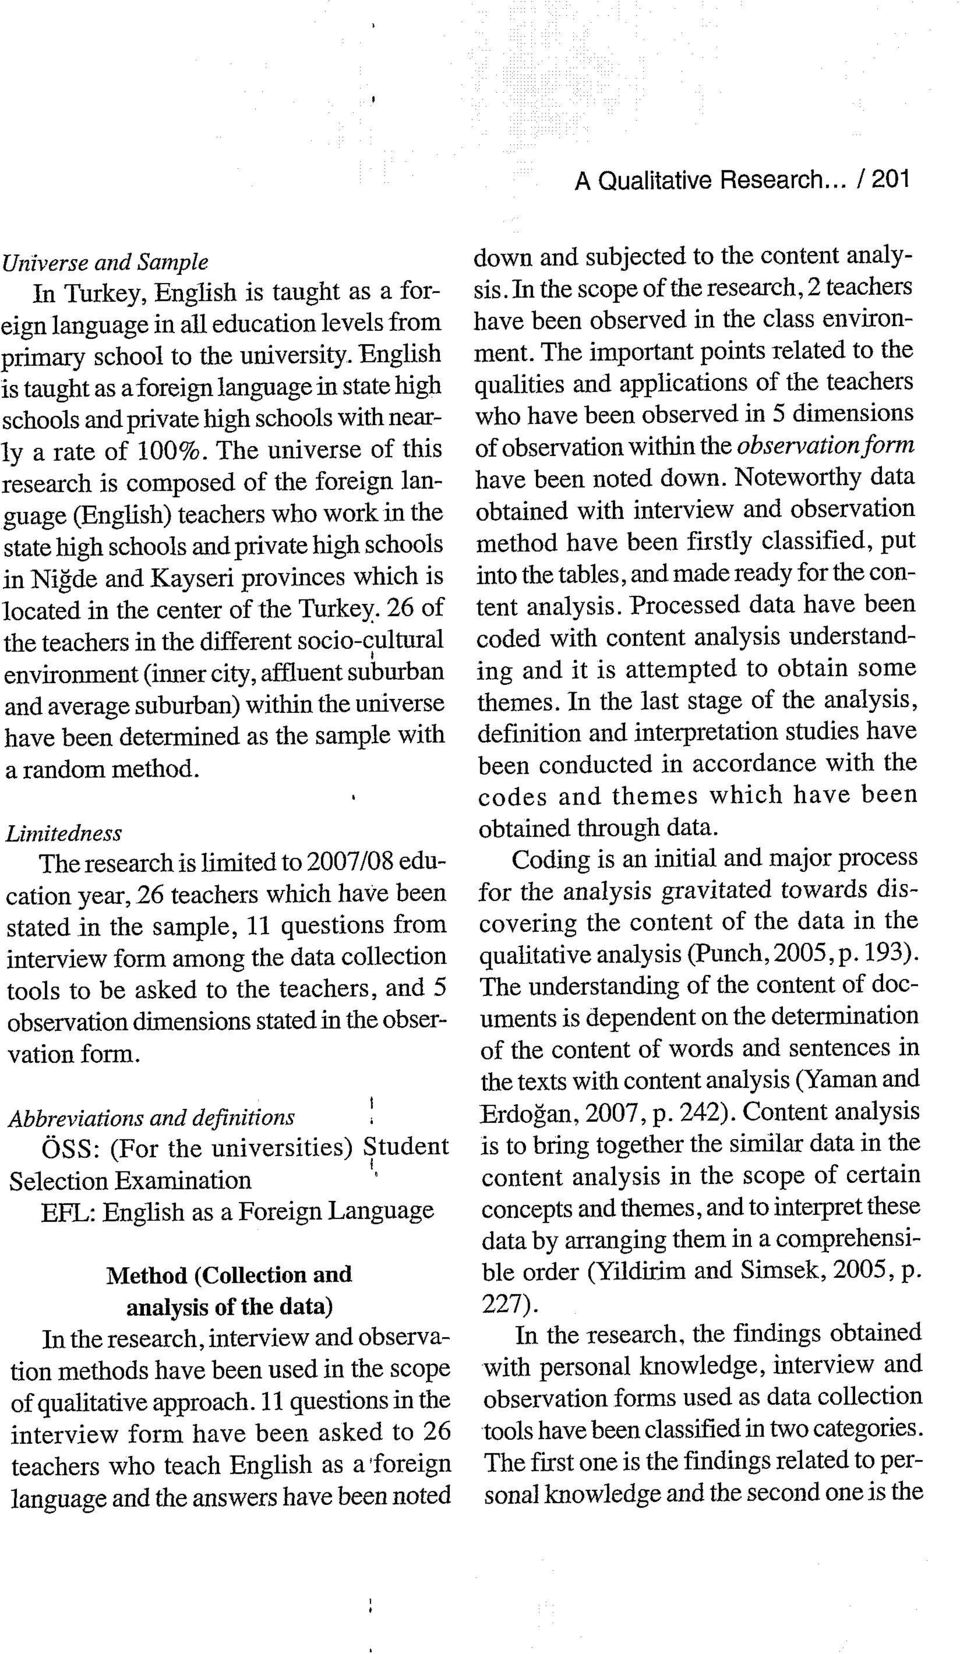 The universe of this research is composed of the foreign language (English) teachers who work in the state high schools and private high schools in NiAde and Kayseri provinces which is located in the